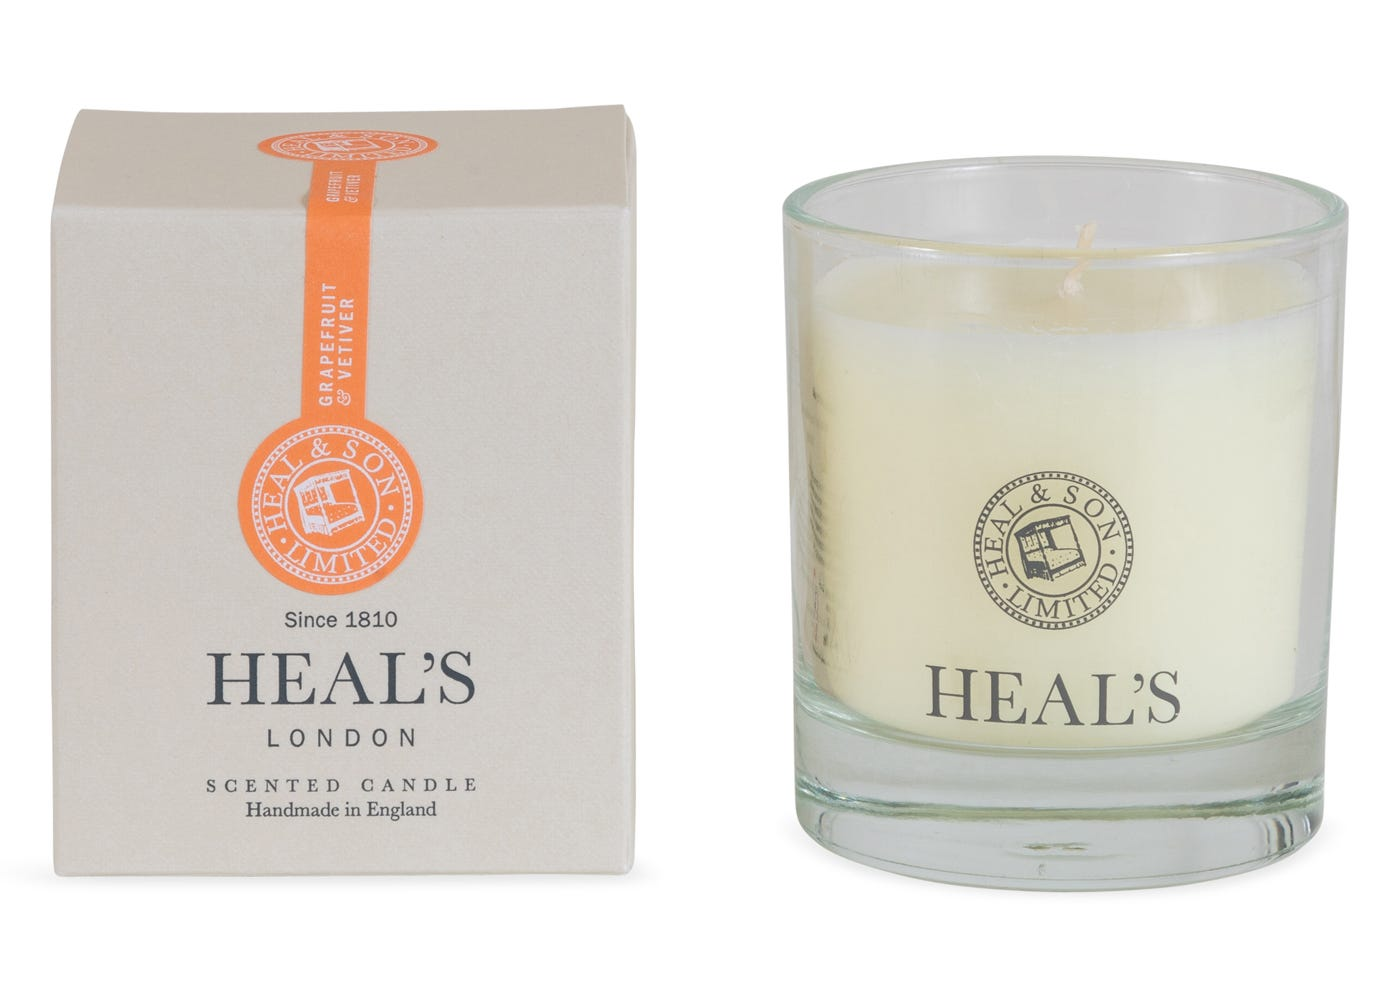 Heal's Grapefruit and Vetivert Scented Glass Candle